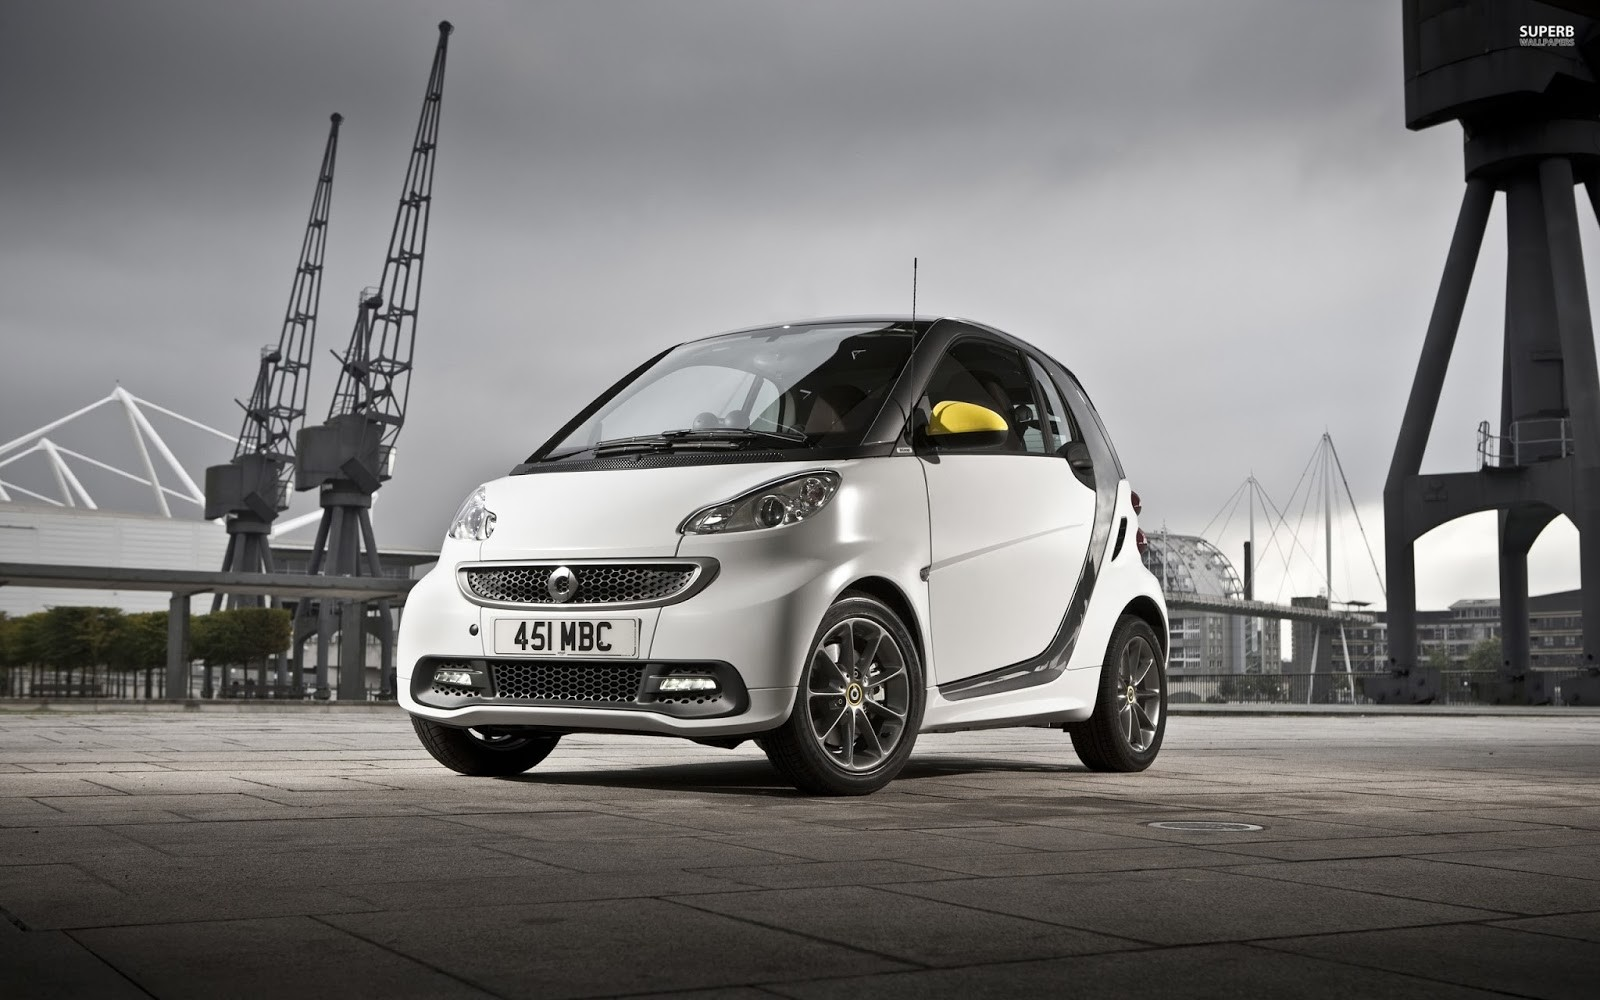 Andre camacho design smart car wallpaper